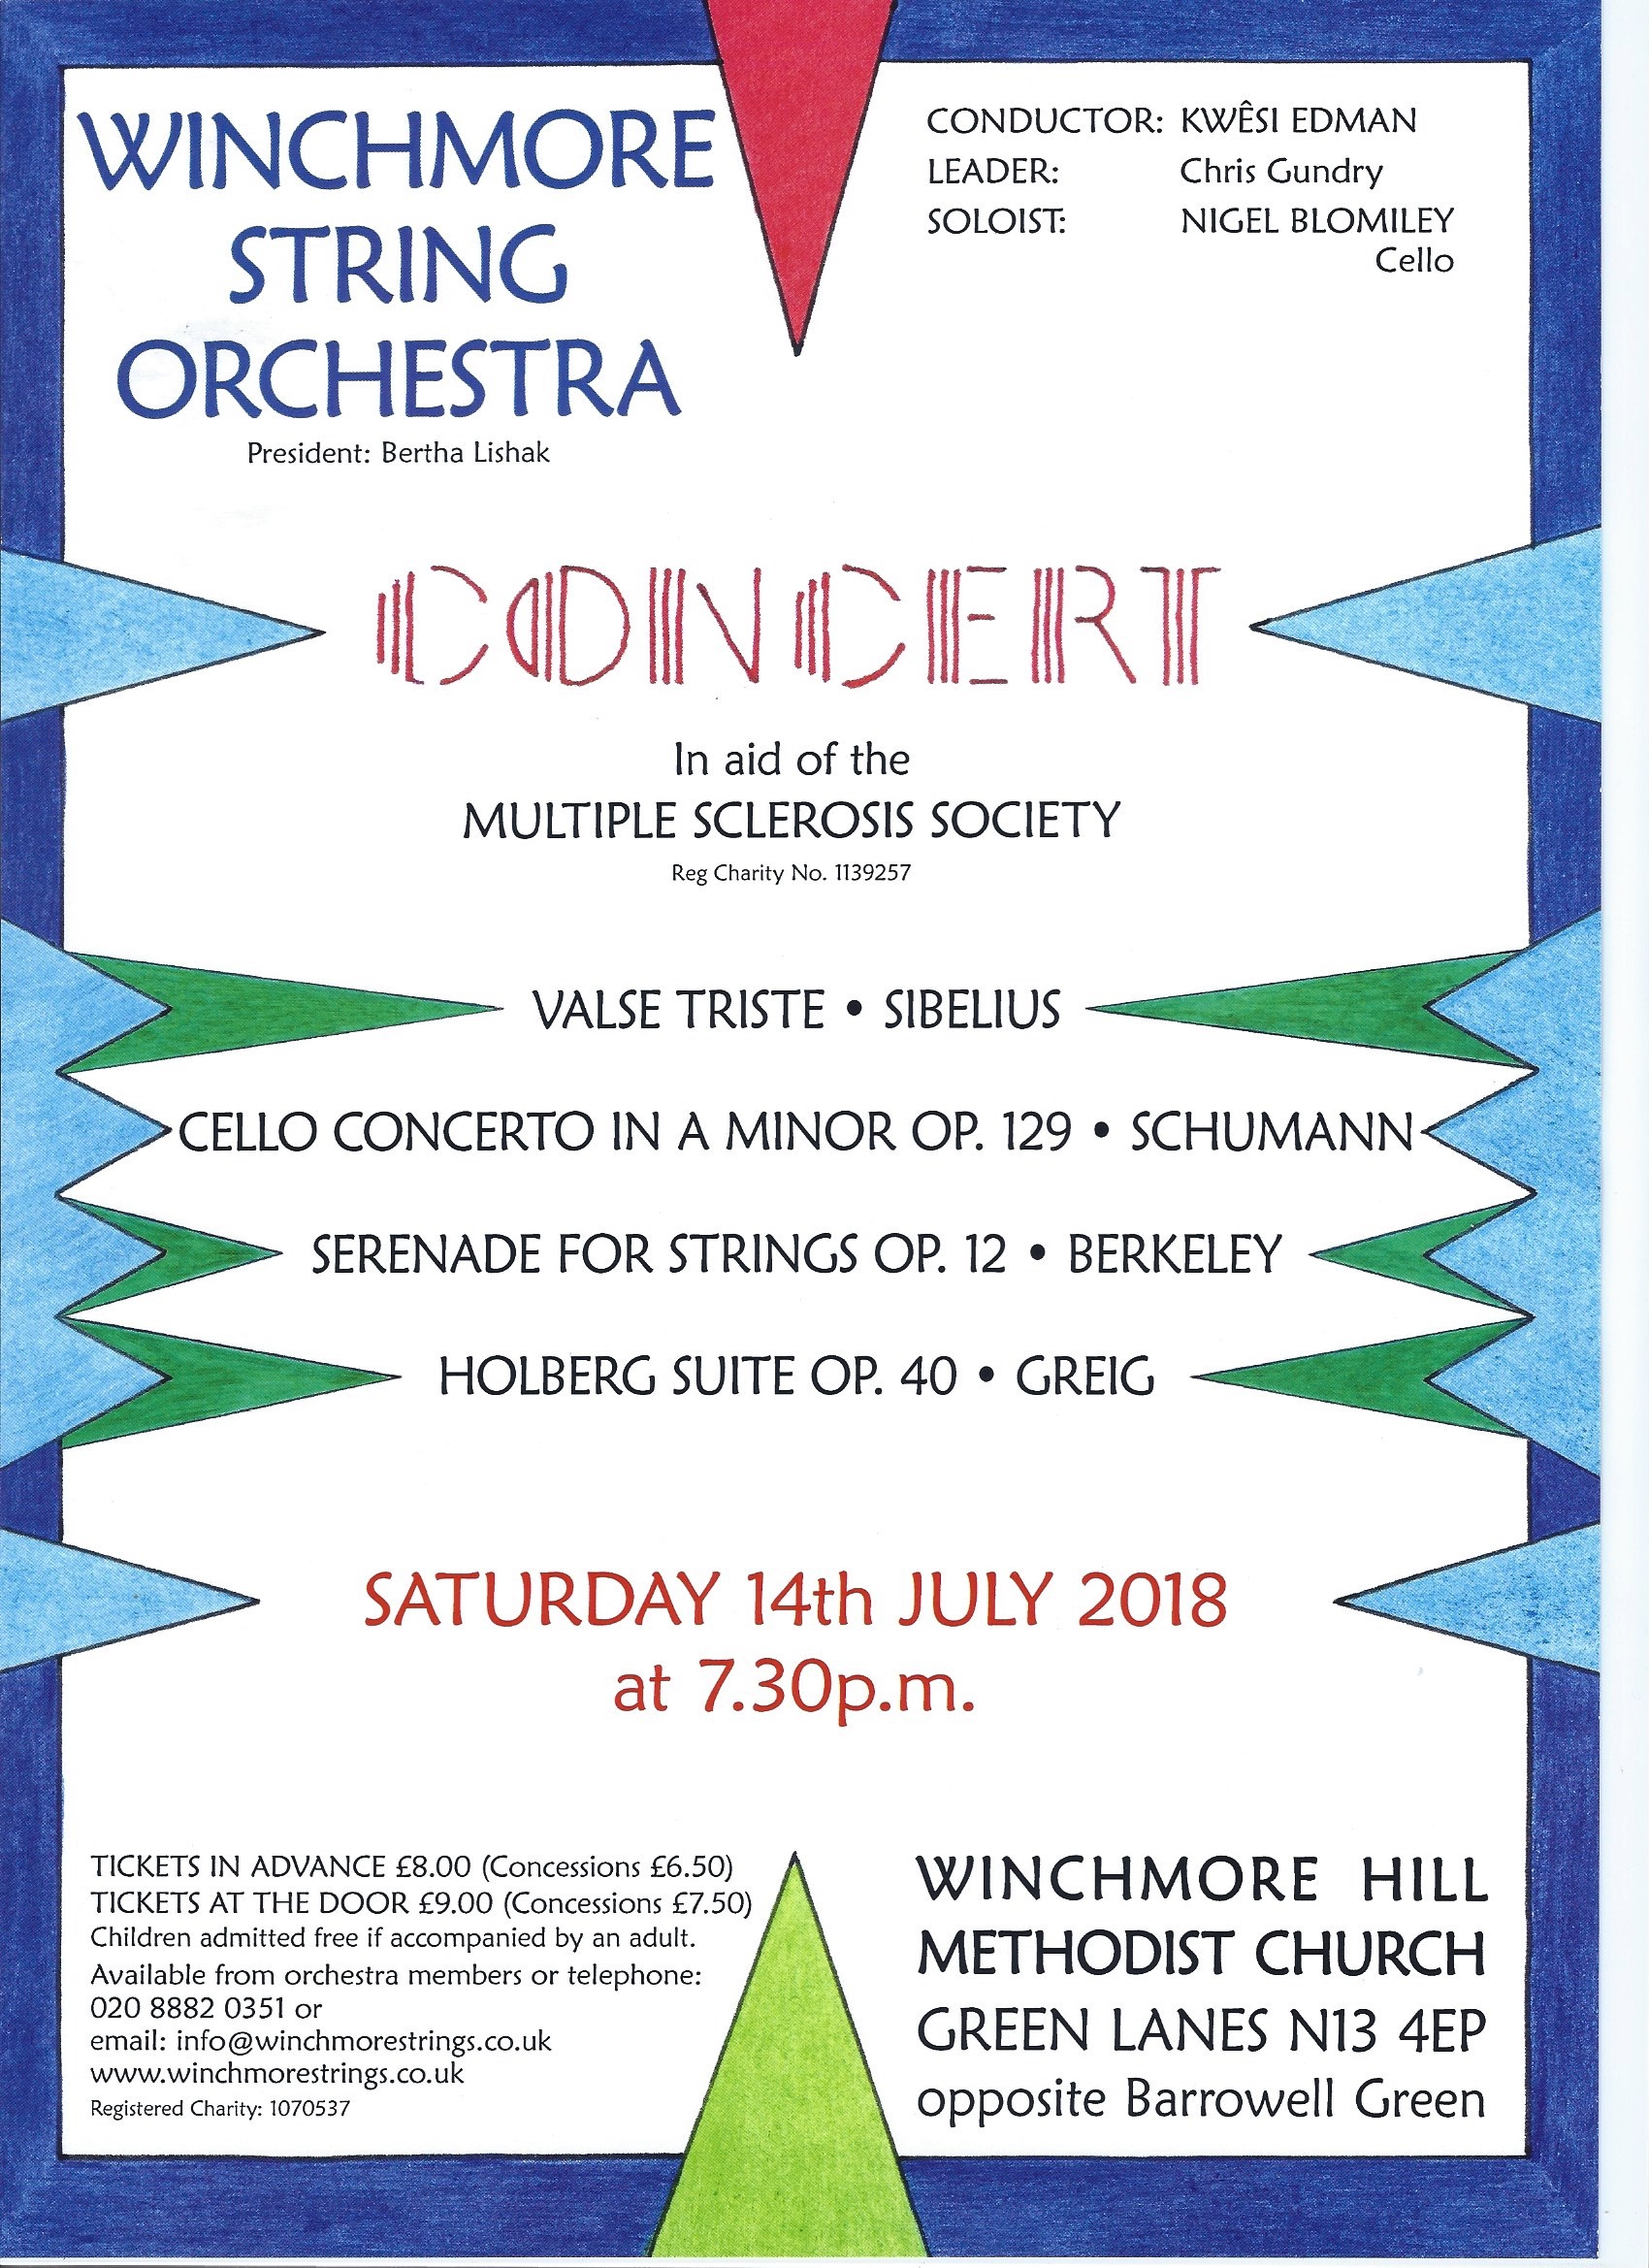 Winchmore String Orchestra Concert in aid of Multiple Sclerosis Society